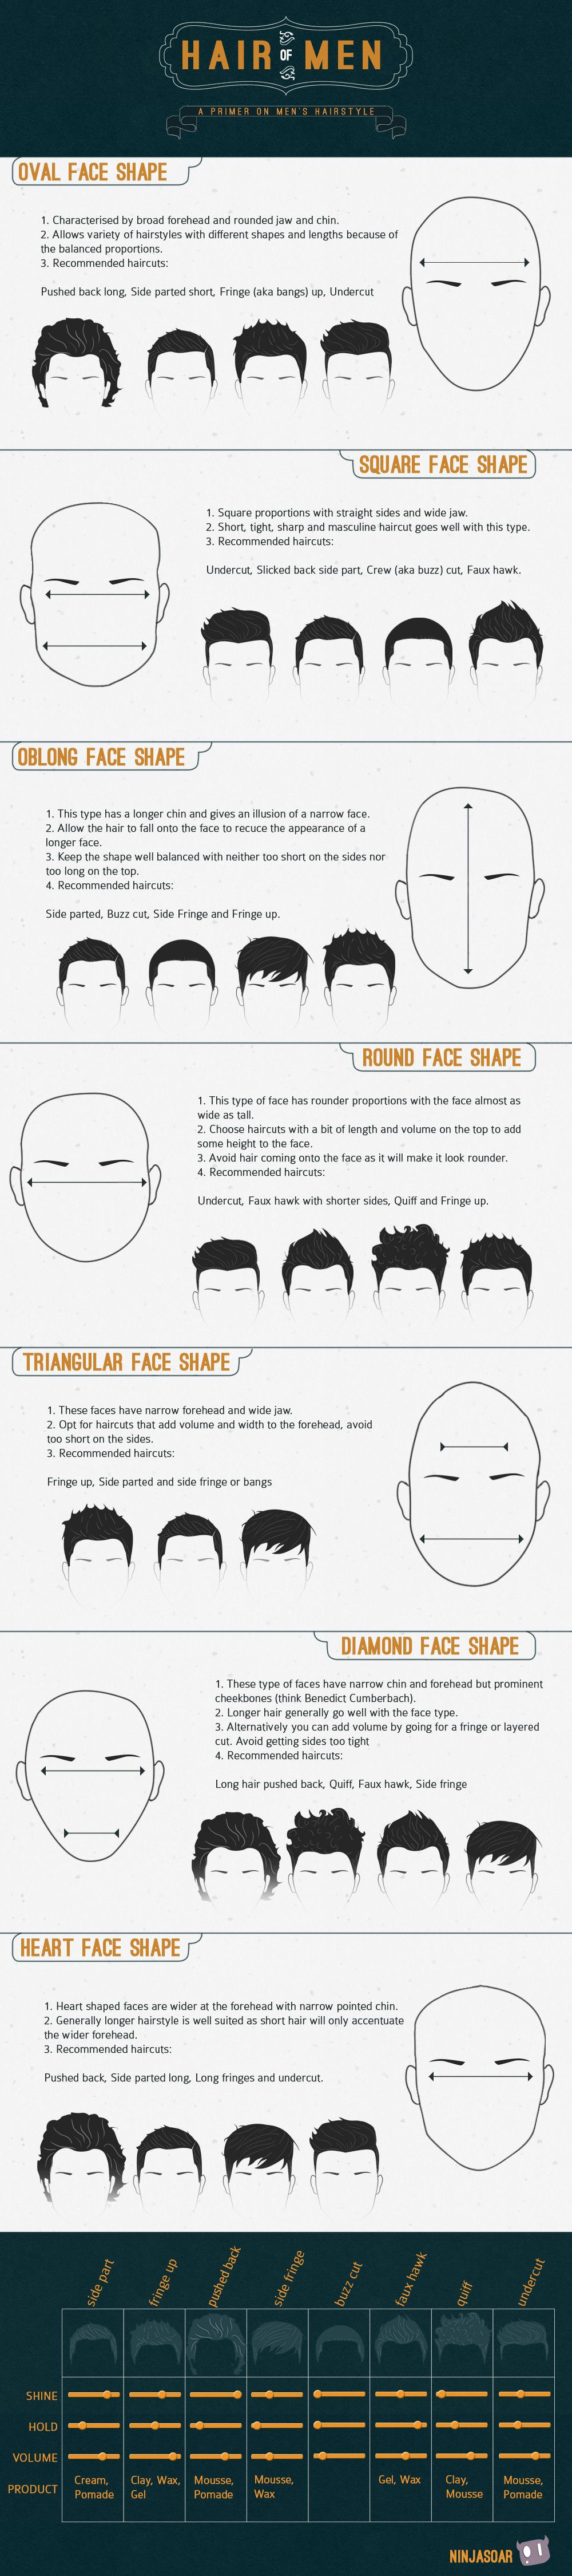 A Guide Finding The Right Haircut | Haircuts, Enemies and 10 years